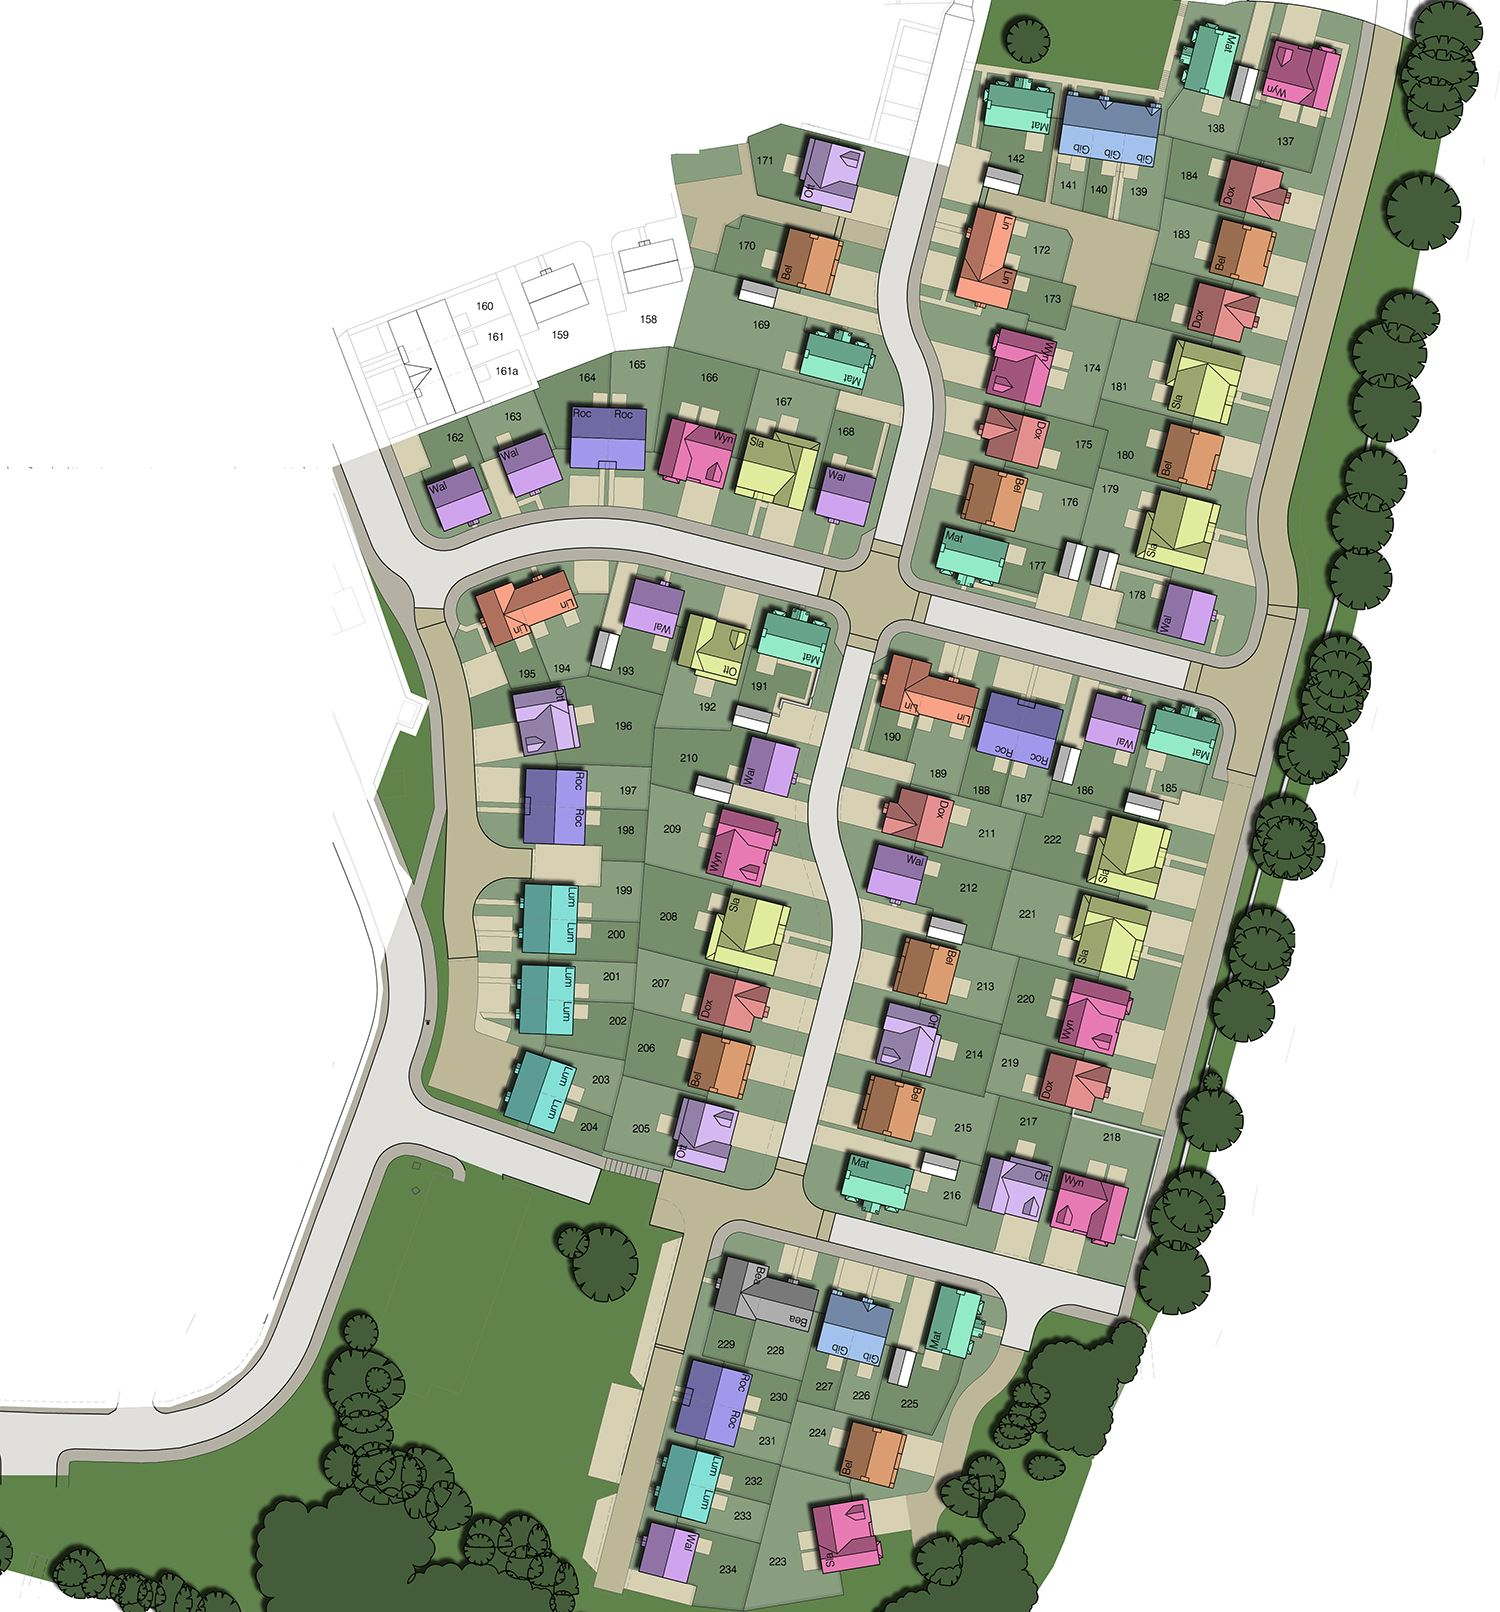 New houses for sale in shotley bridge story homes for Home site plan